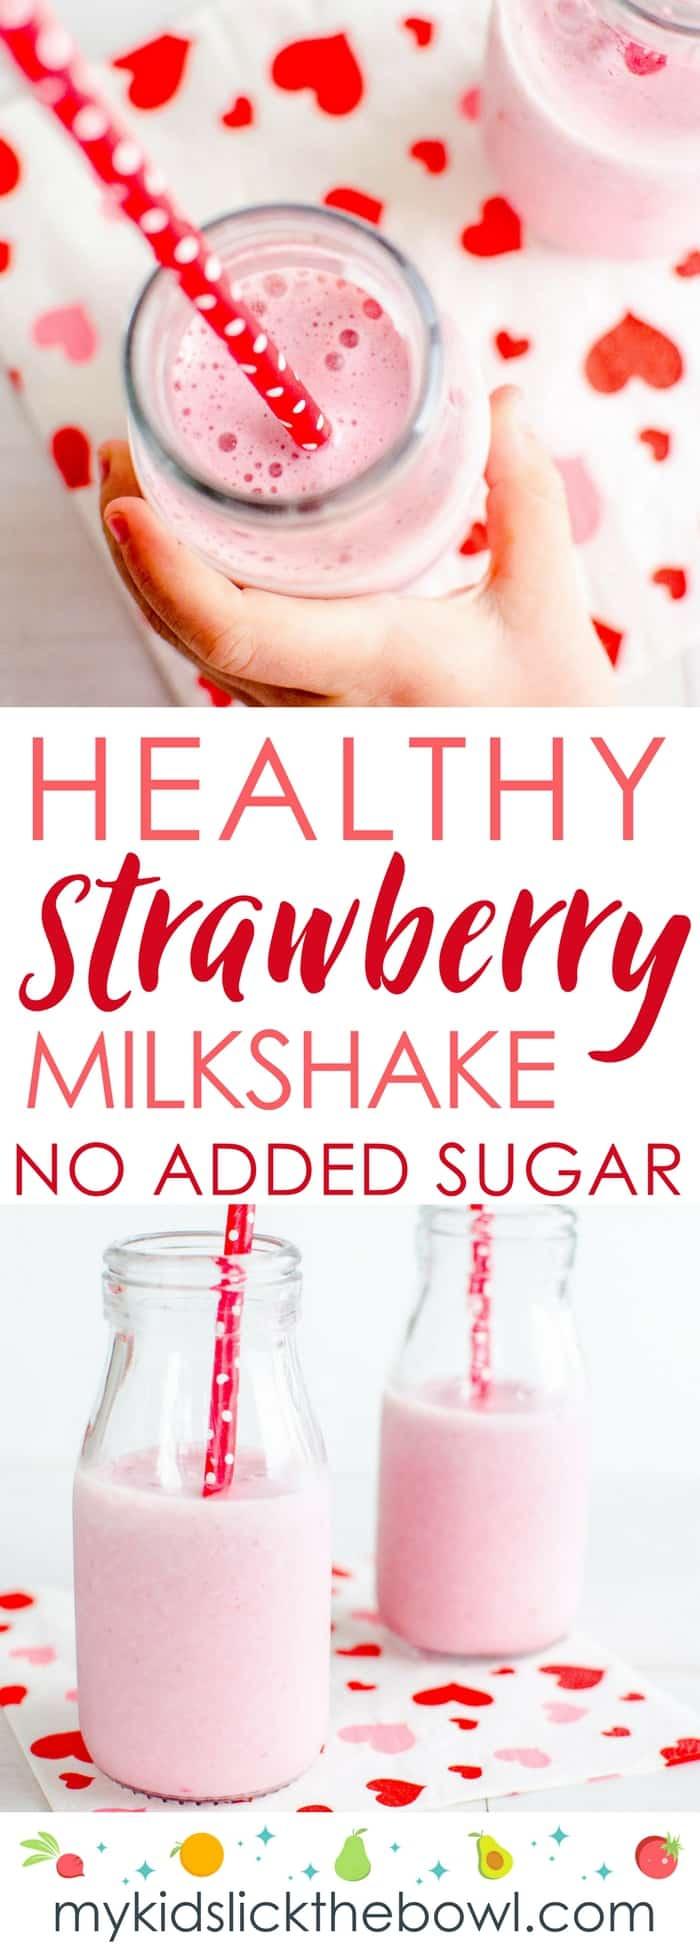 Healthy Strawberry Milkshake Homemade Easy Recipe, Vegan Options, No added sugar perfect Valentines smoothie for kids #valentines #milkshake #smoothie